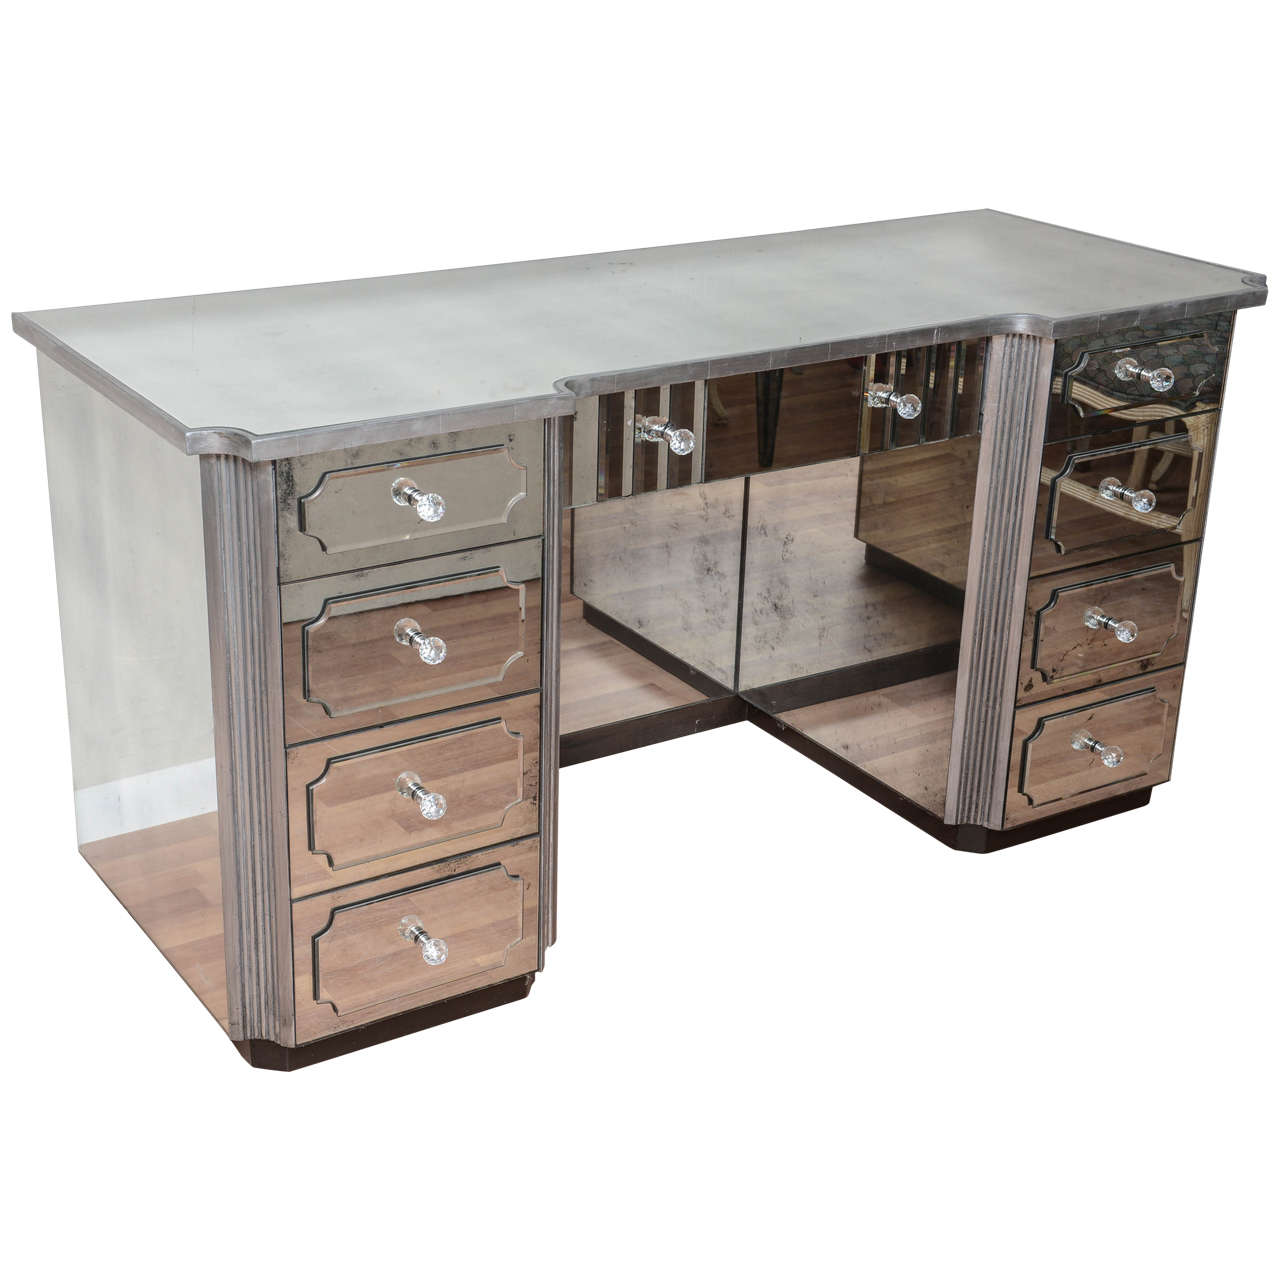 Superb Mirrored Dressing Table Or Vanity With Nine Drawers For Sale